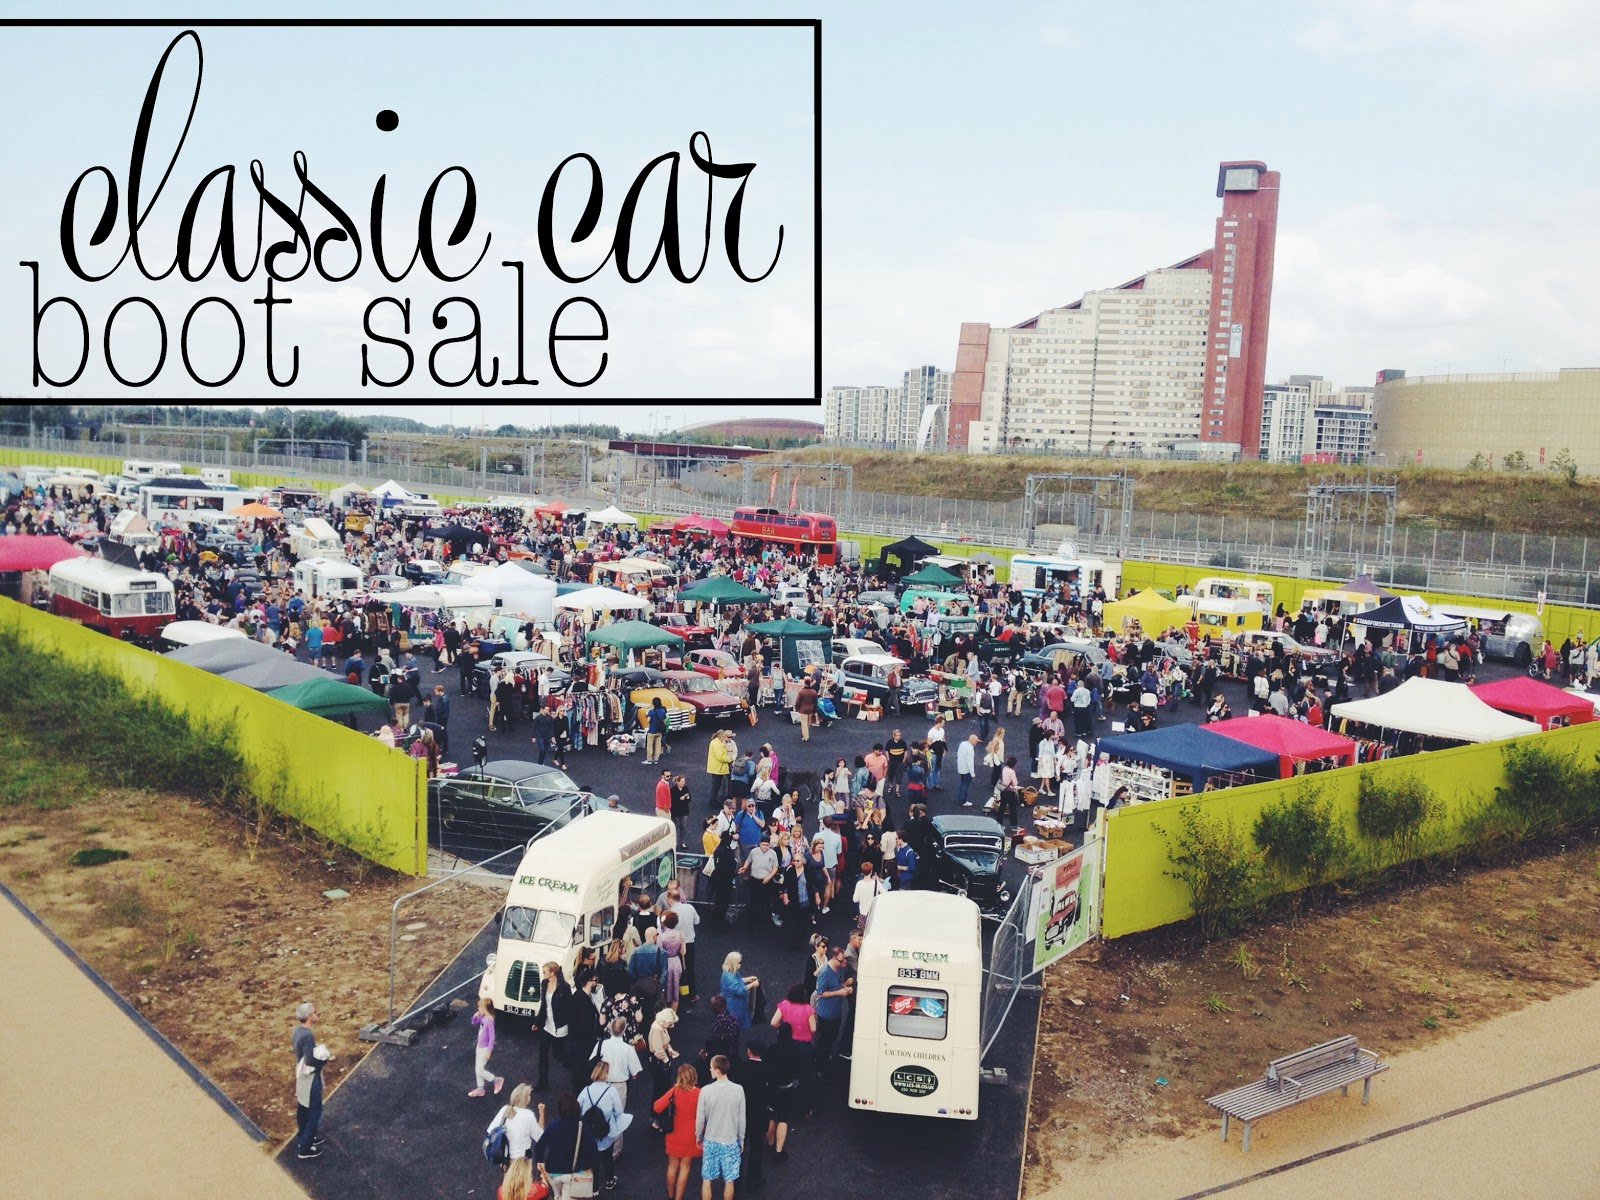 Classic Car Boot Sale - where the heart is